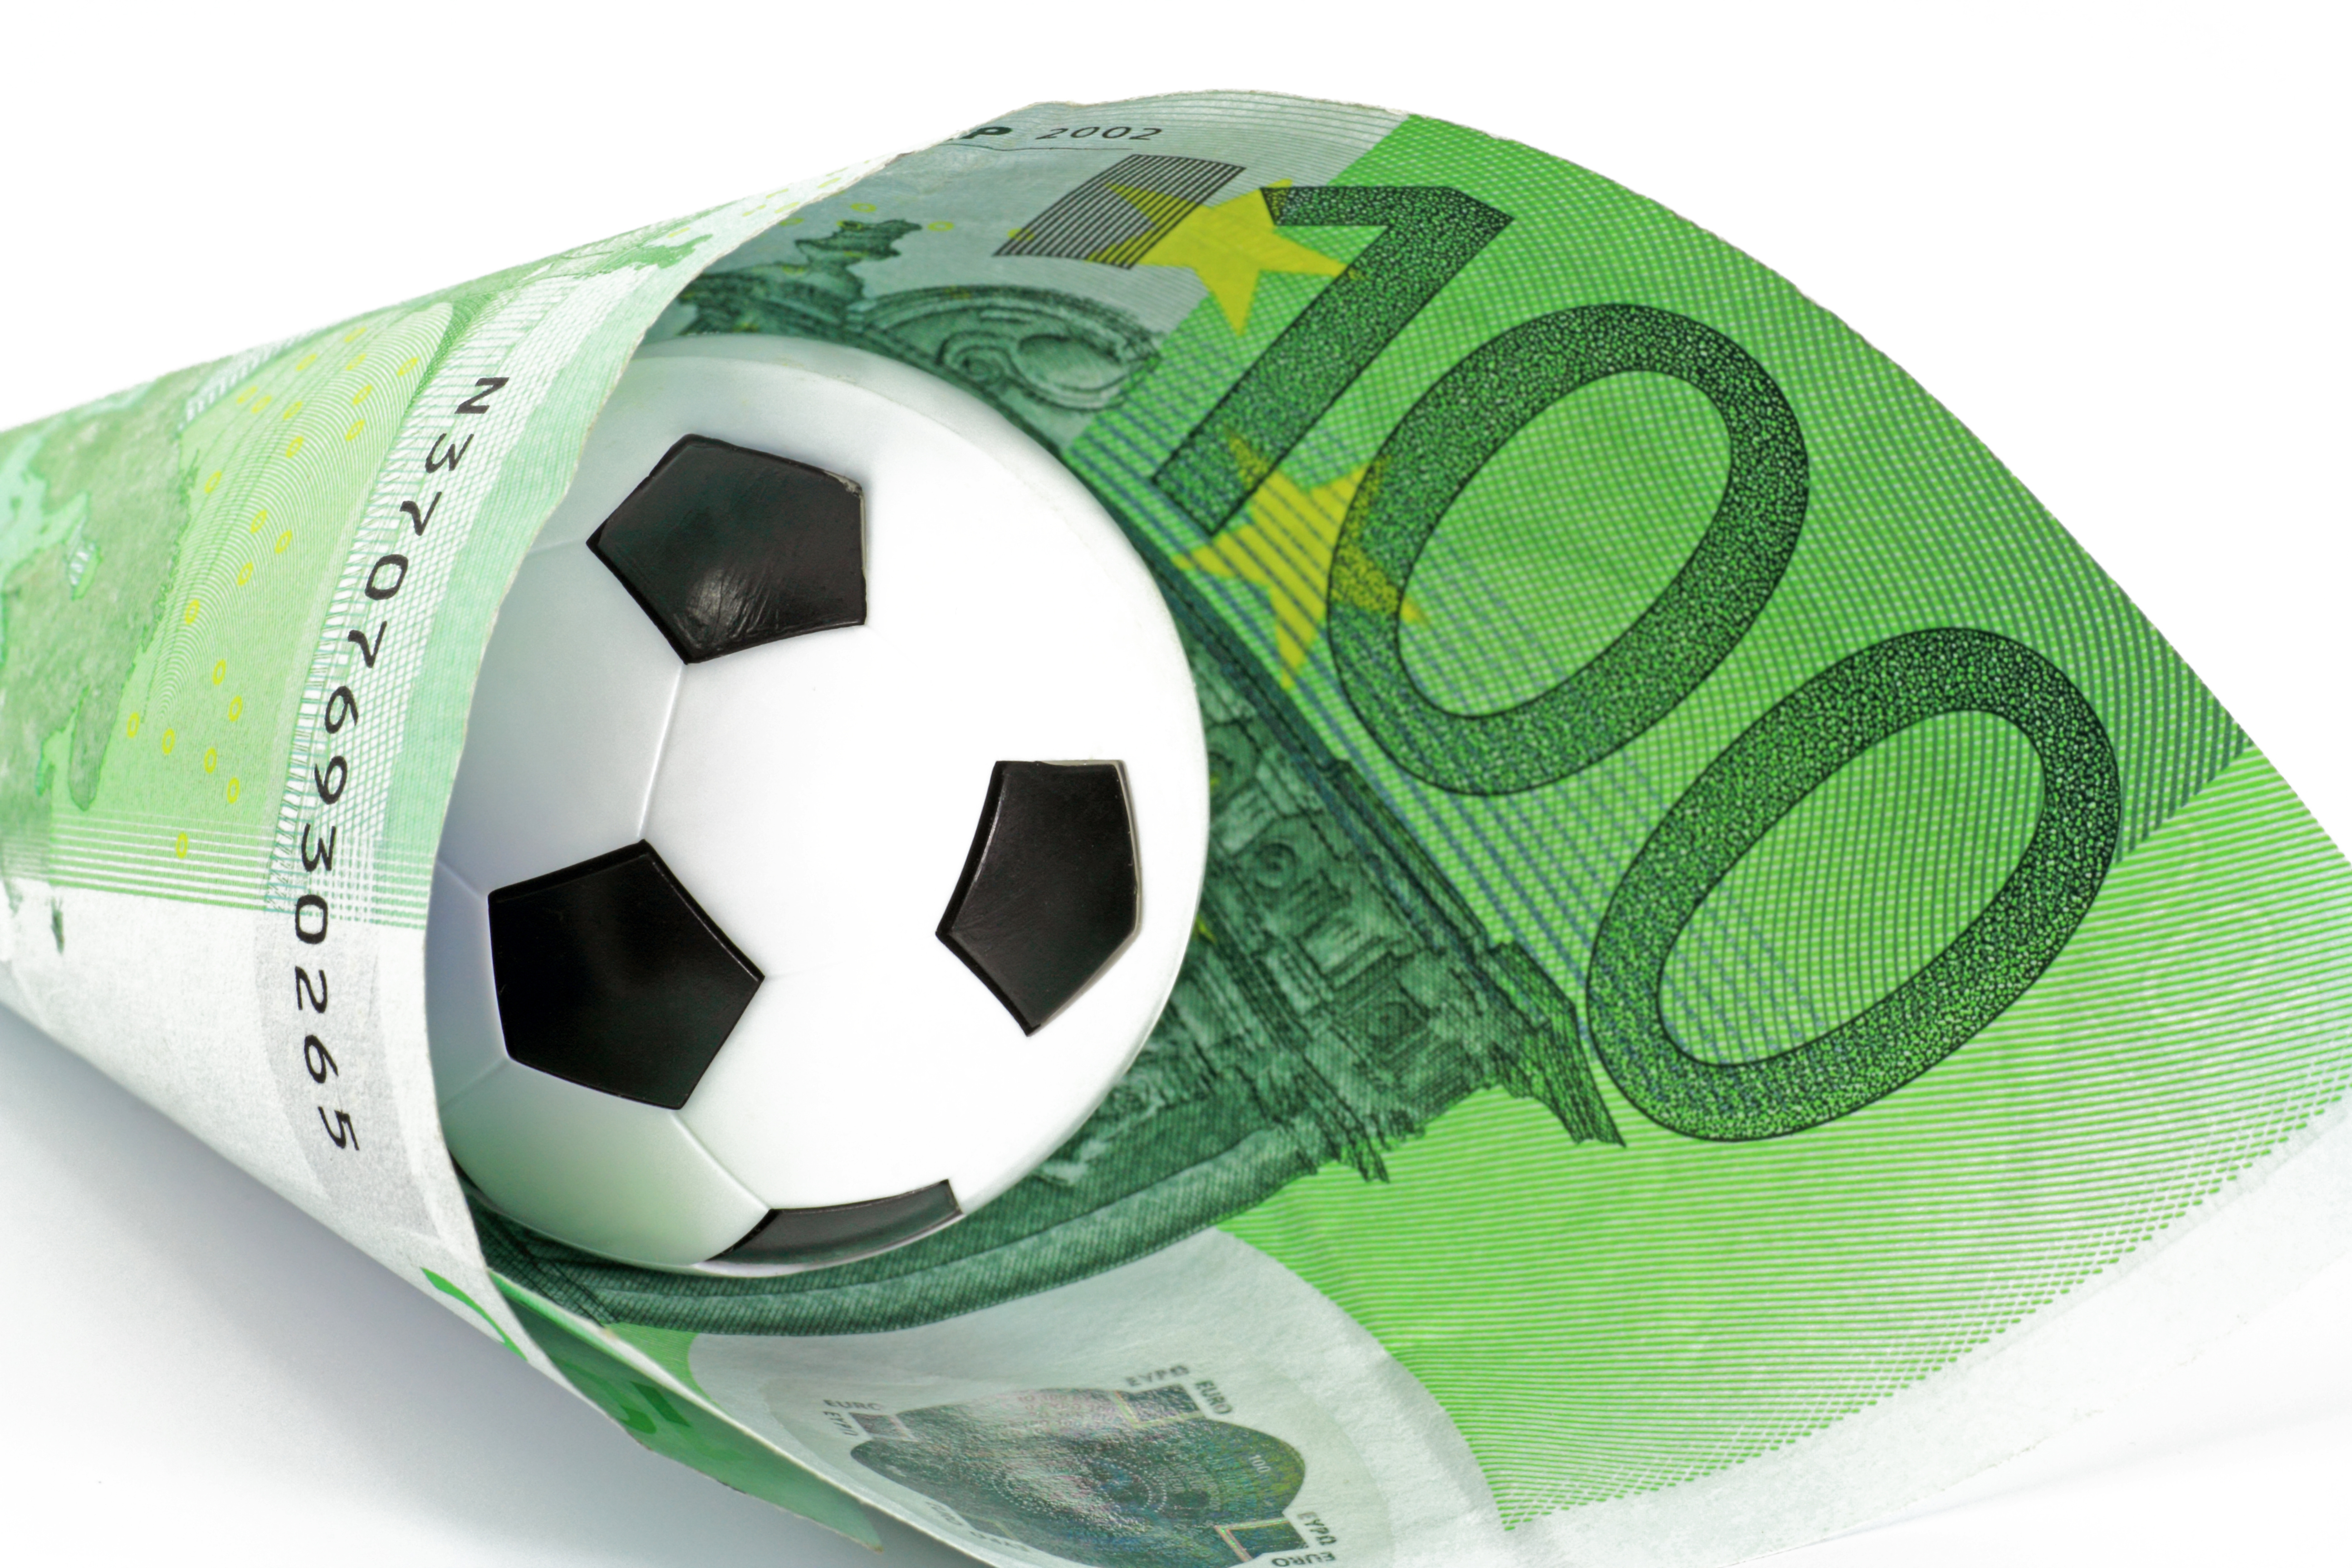 match fixing The growth in match-fixing has been fuelled by the vast amount wagered on sport—around $2 trillion a year, according to the international centre for sport security (icss), a think-tank.